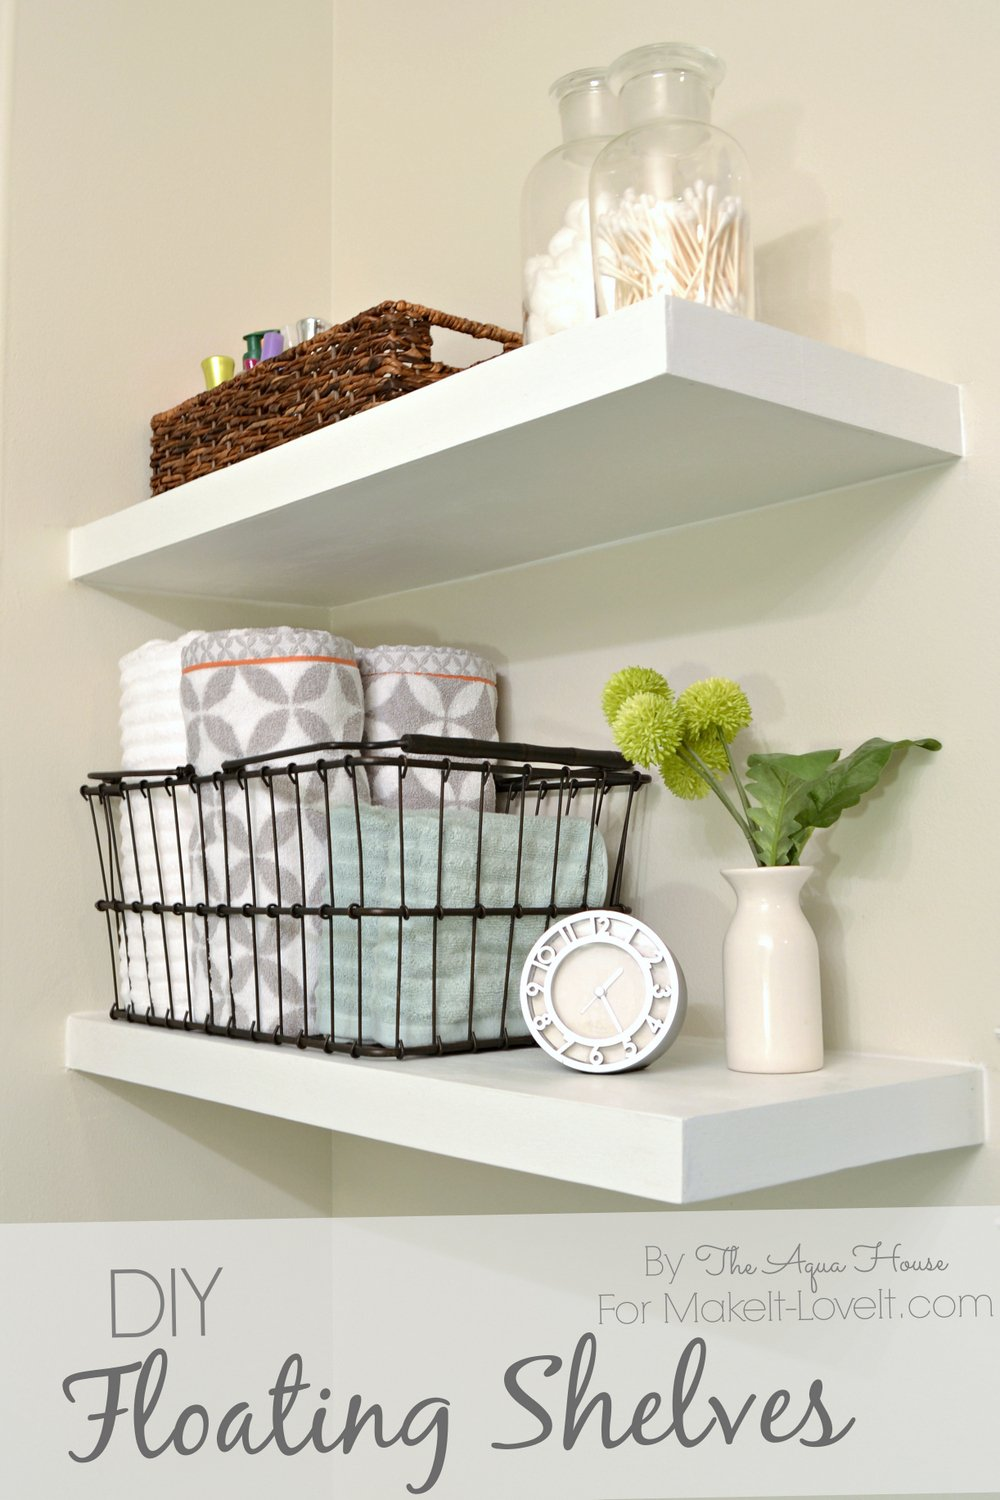 Diy floating shelves……a great storage solution!